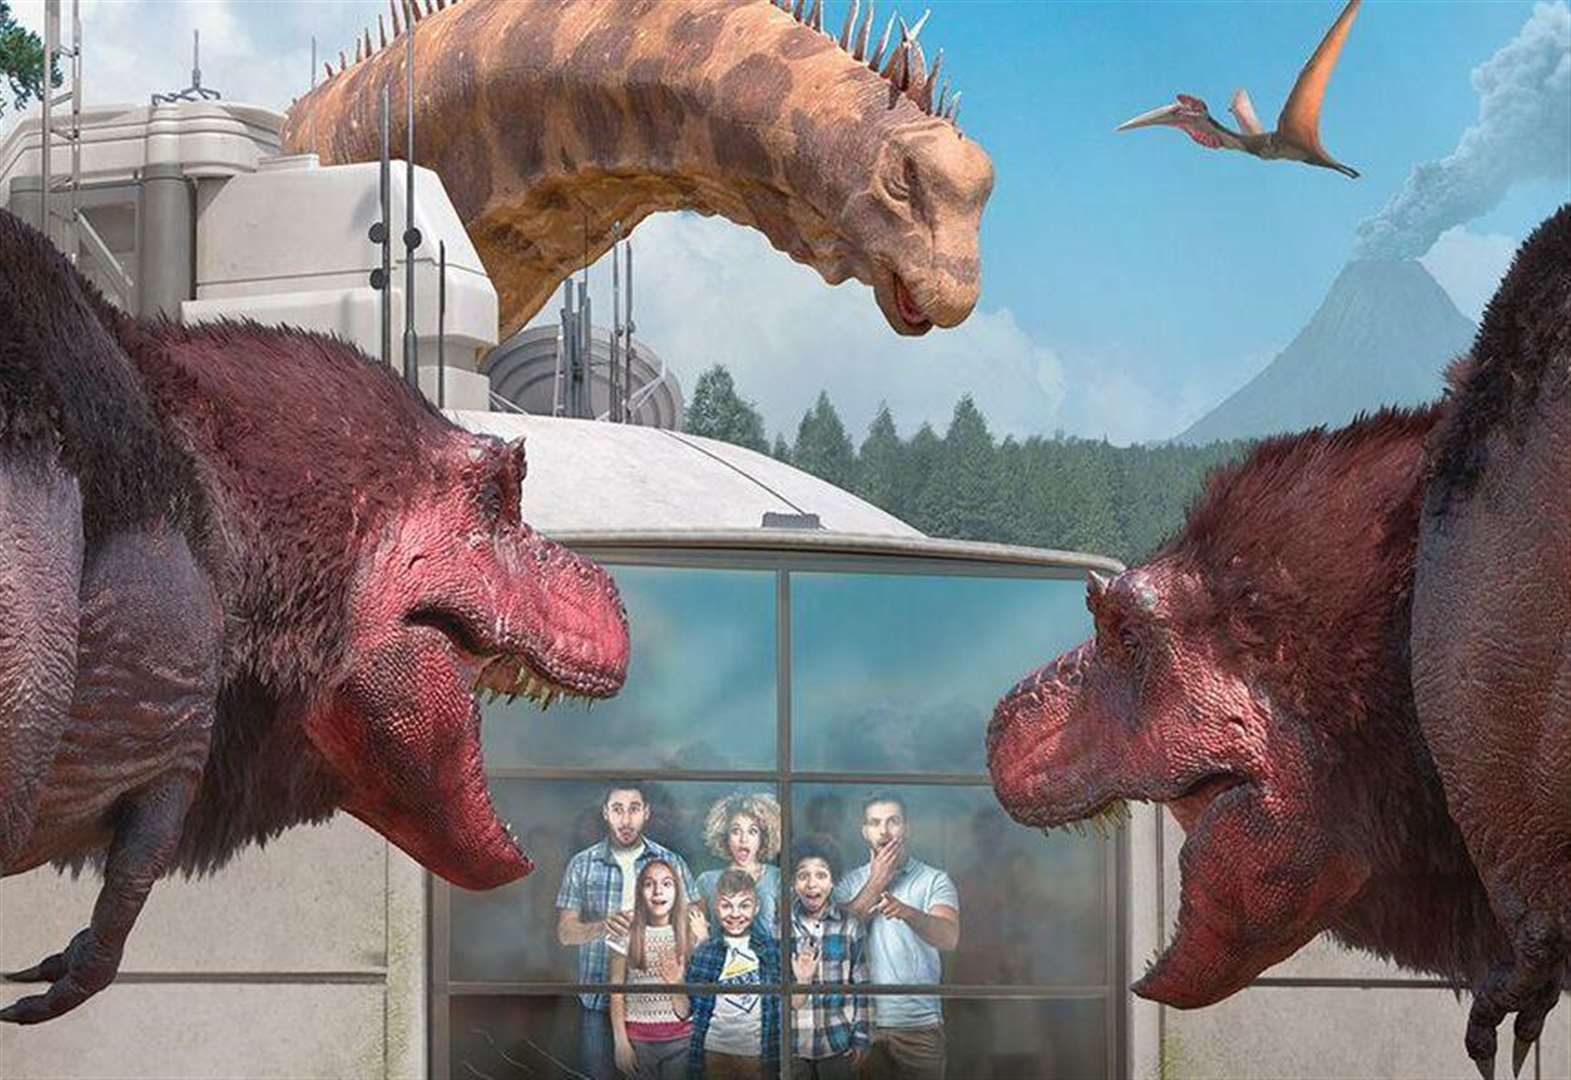 Cheap tickets on offer for the ultimate dinosaurs adventure